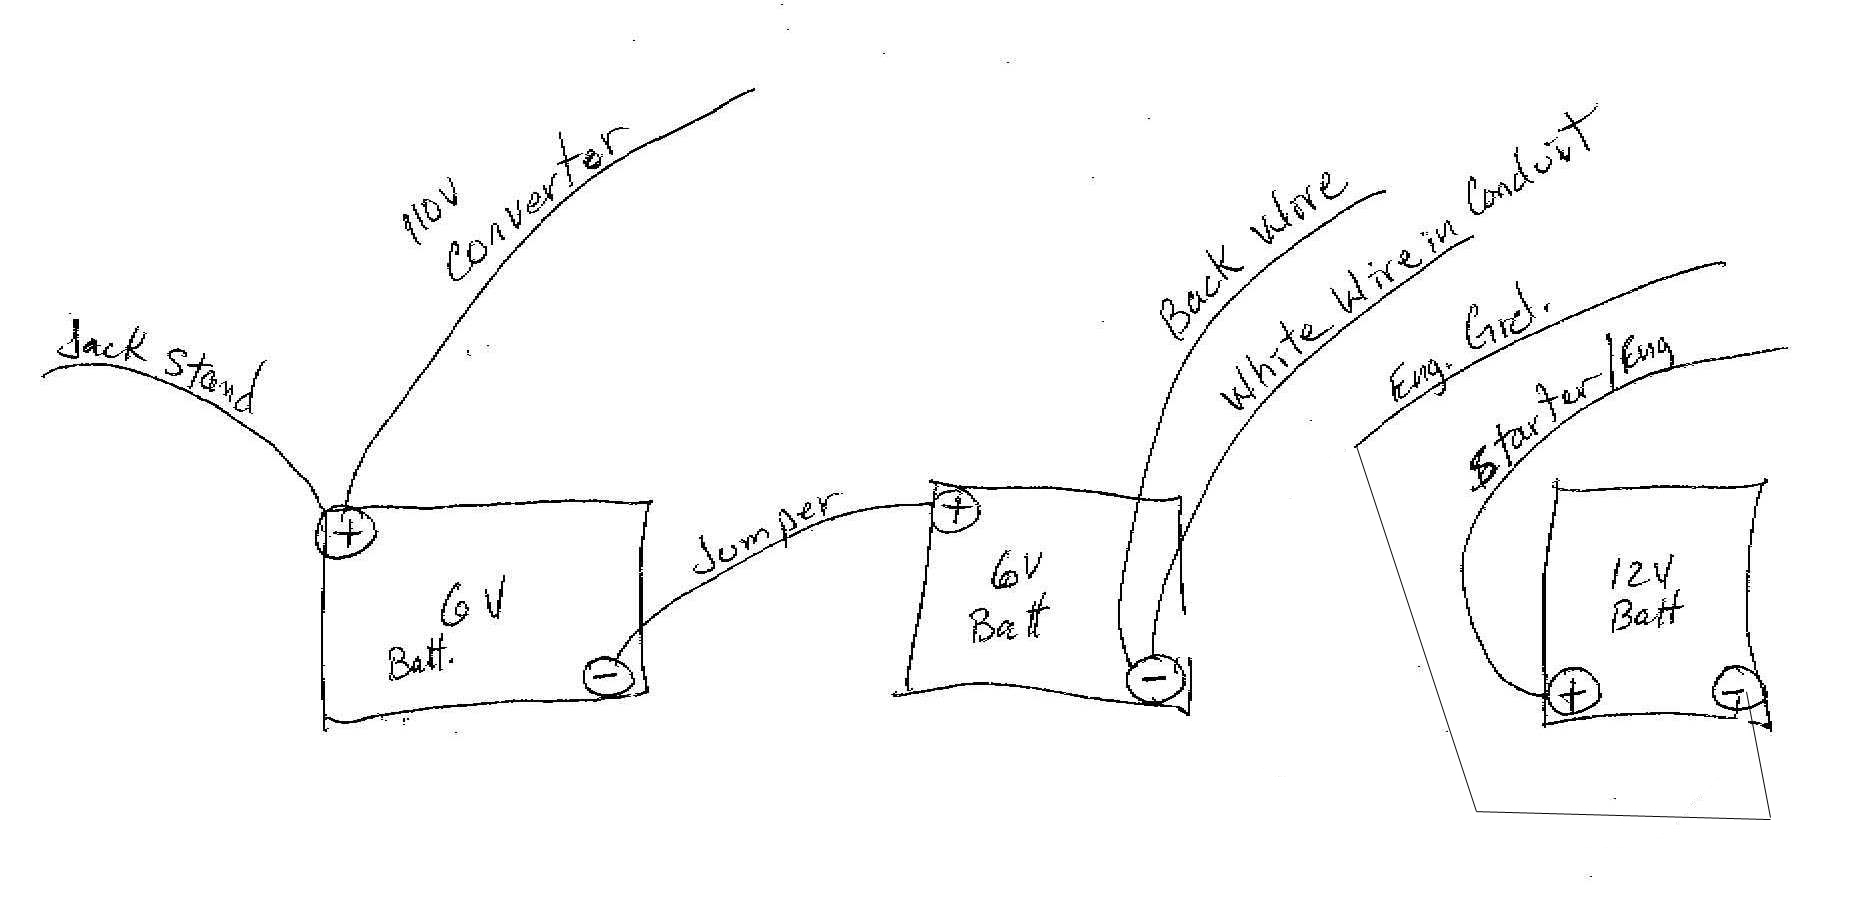 1991 Pace Arrow Battery Wiring Diagram   Wiring Library - Extreme Trailer Wiring Diagram